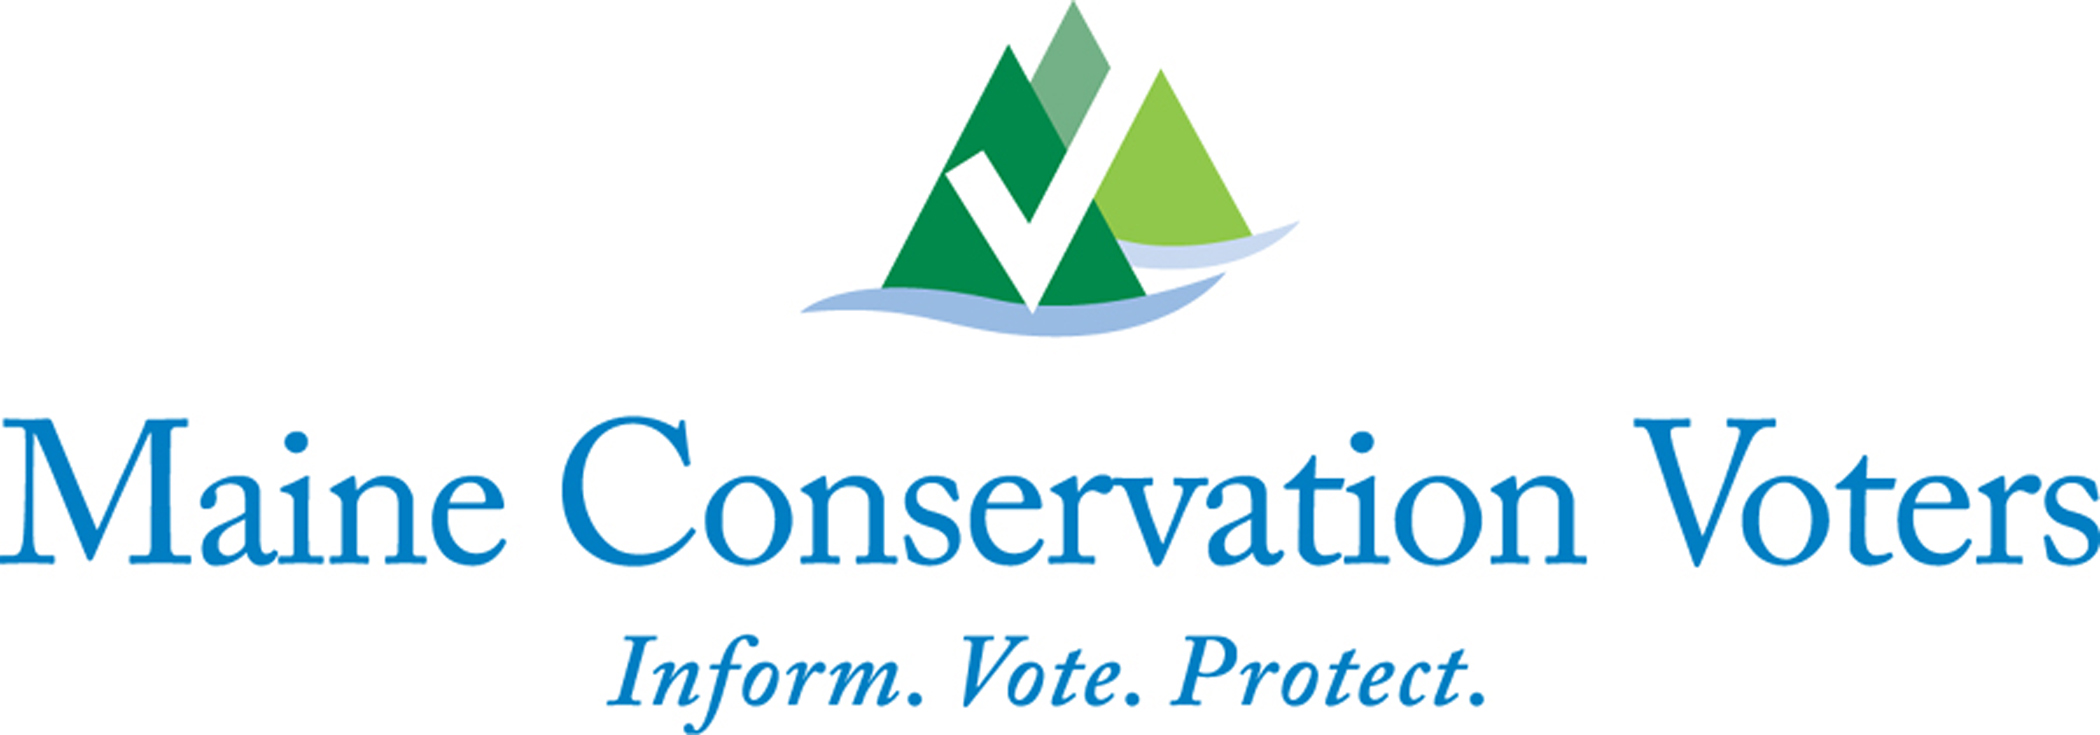 Maine Conservation Voters